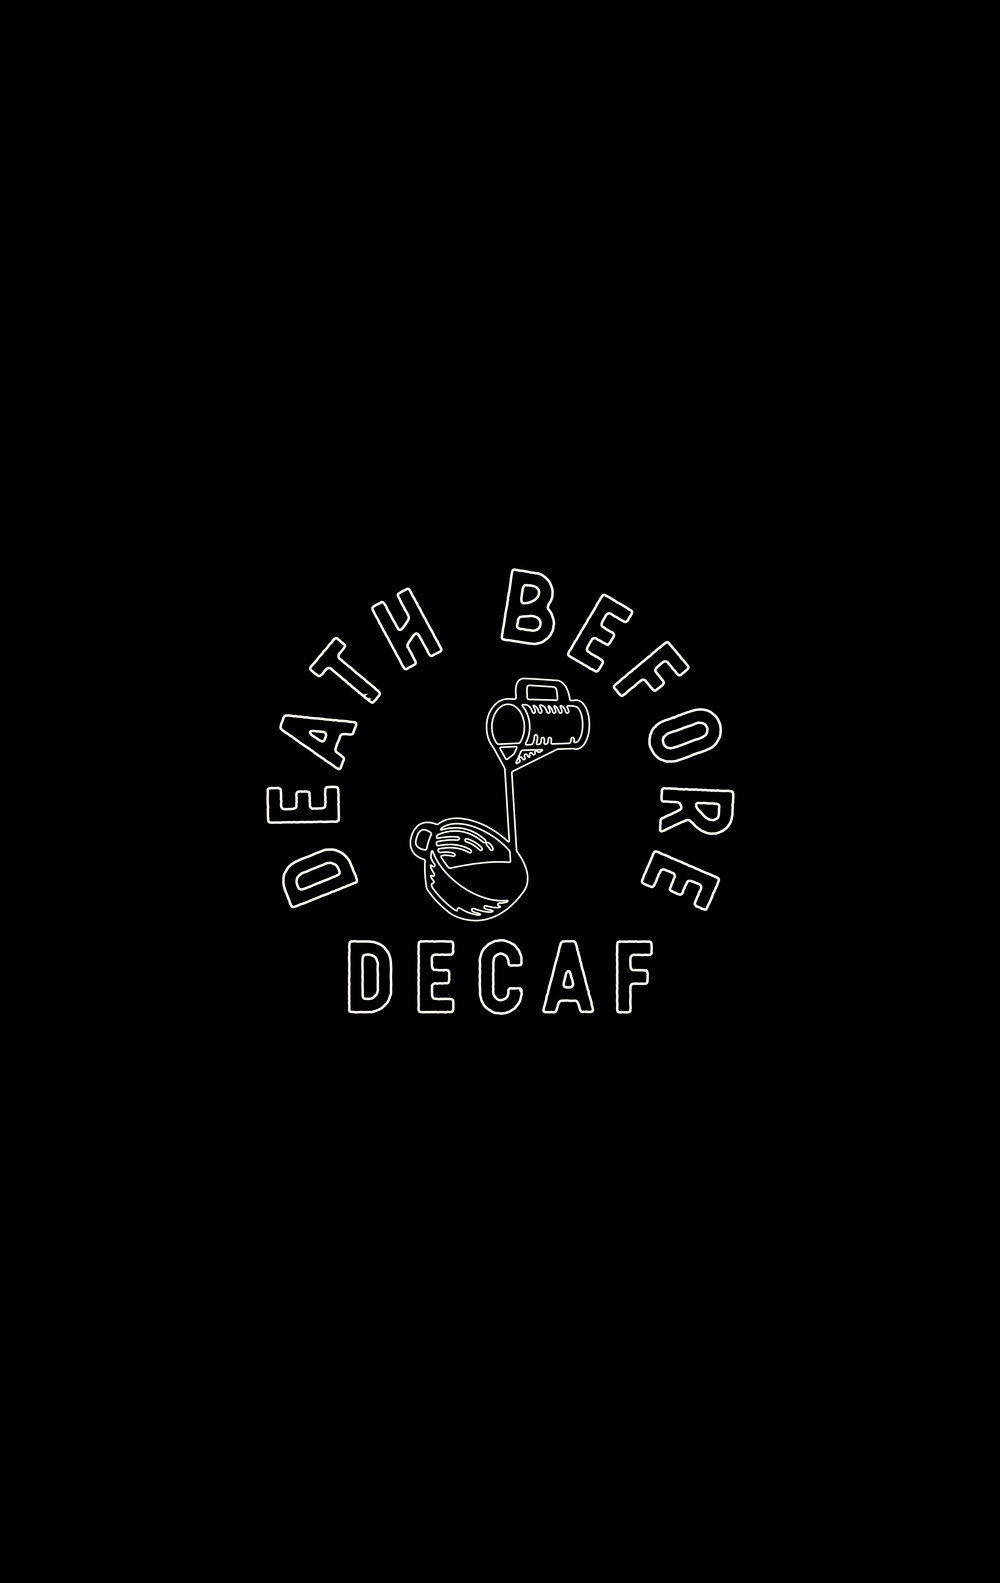 Never Decaf